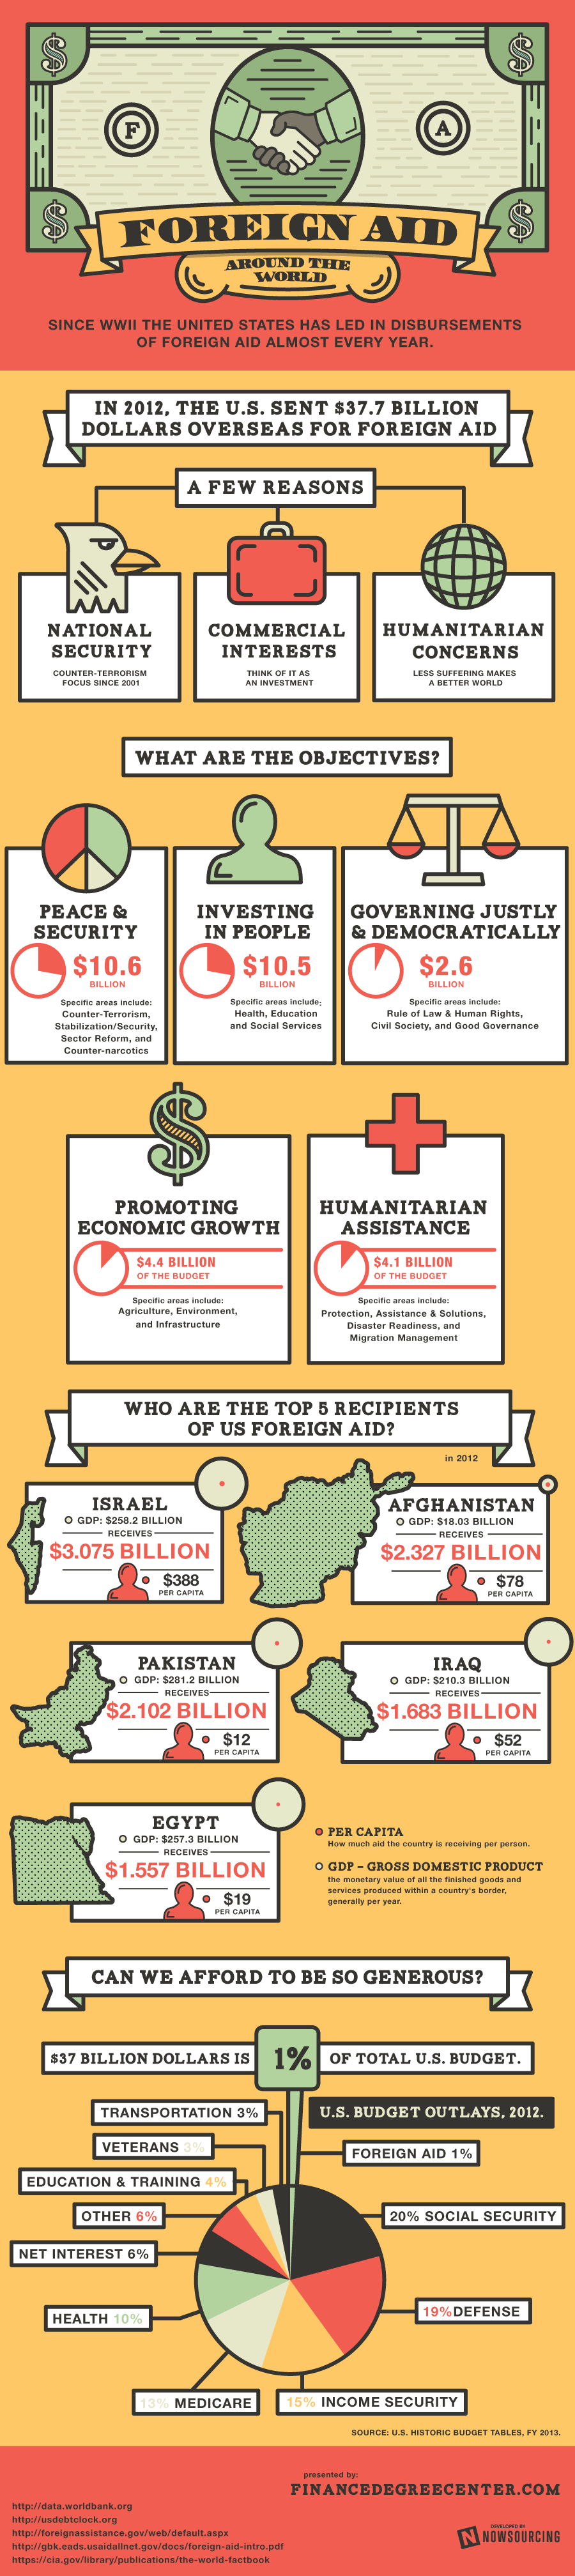 US Foreign Aid 2012-Infographic